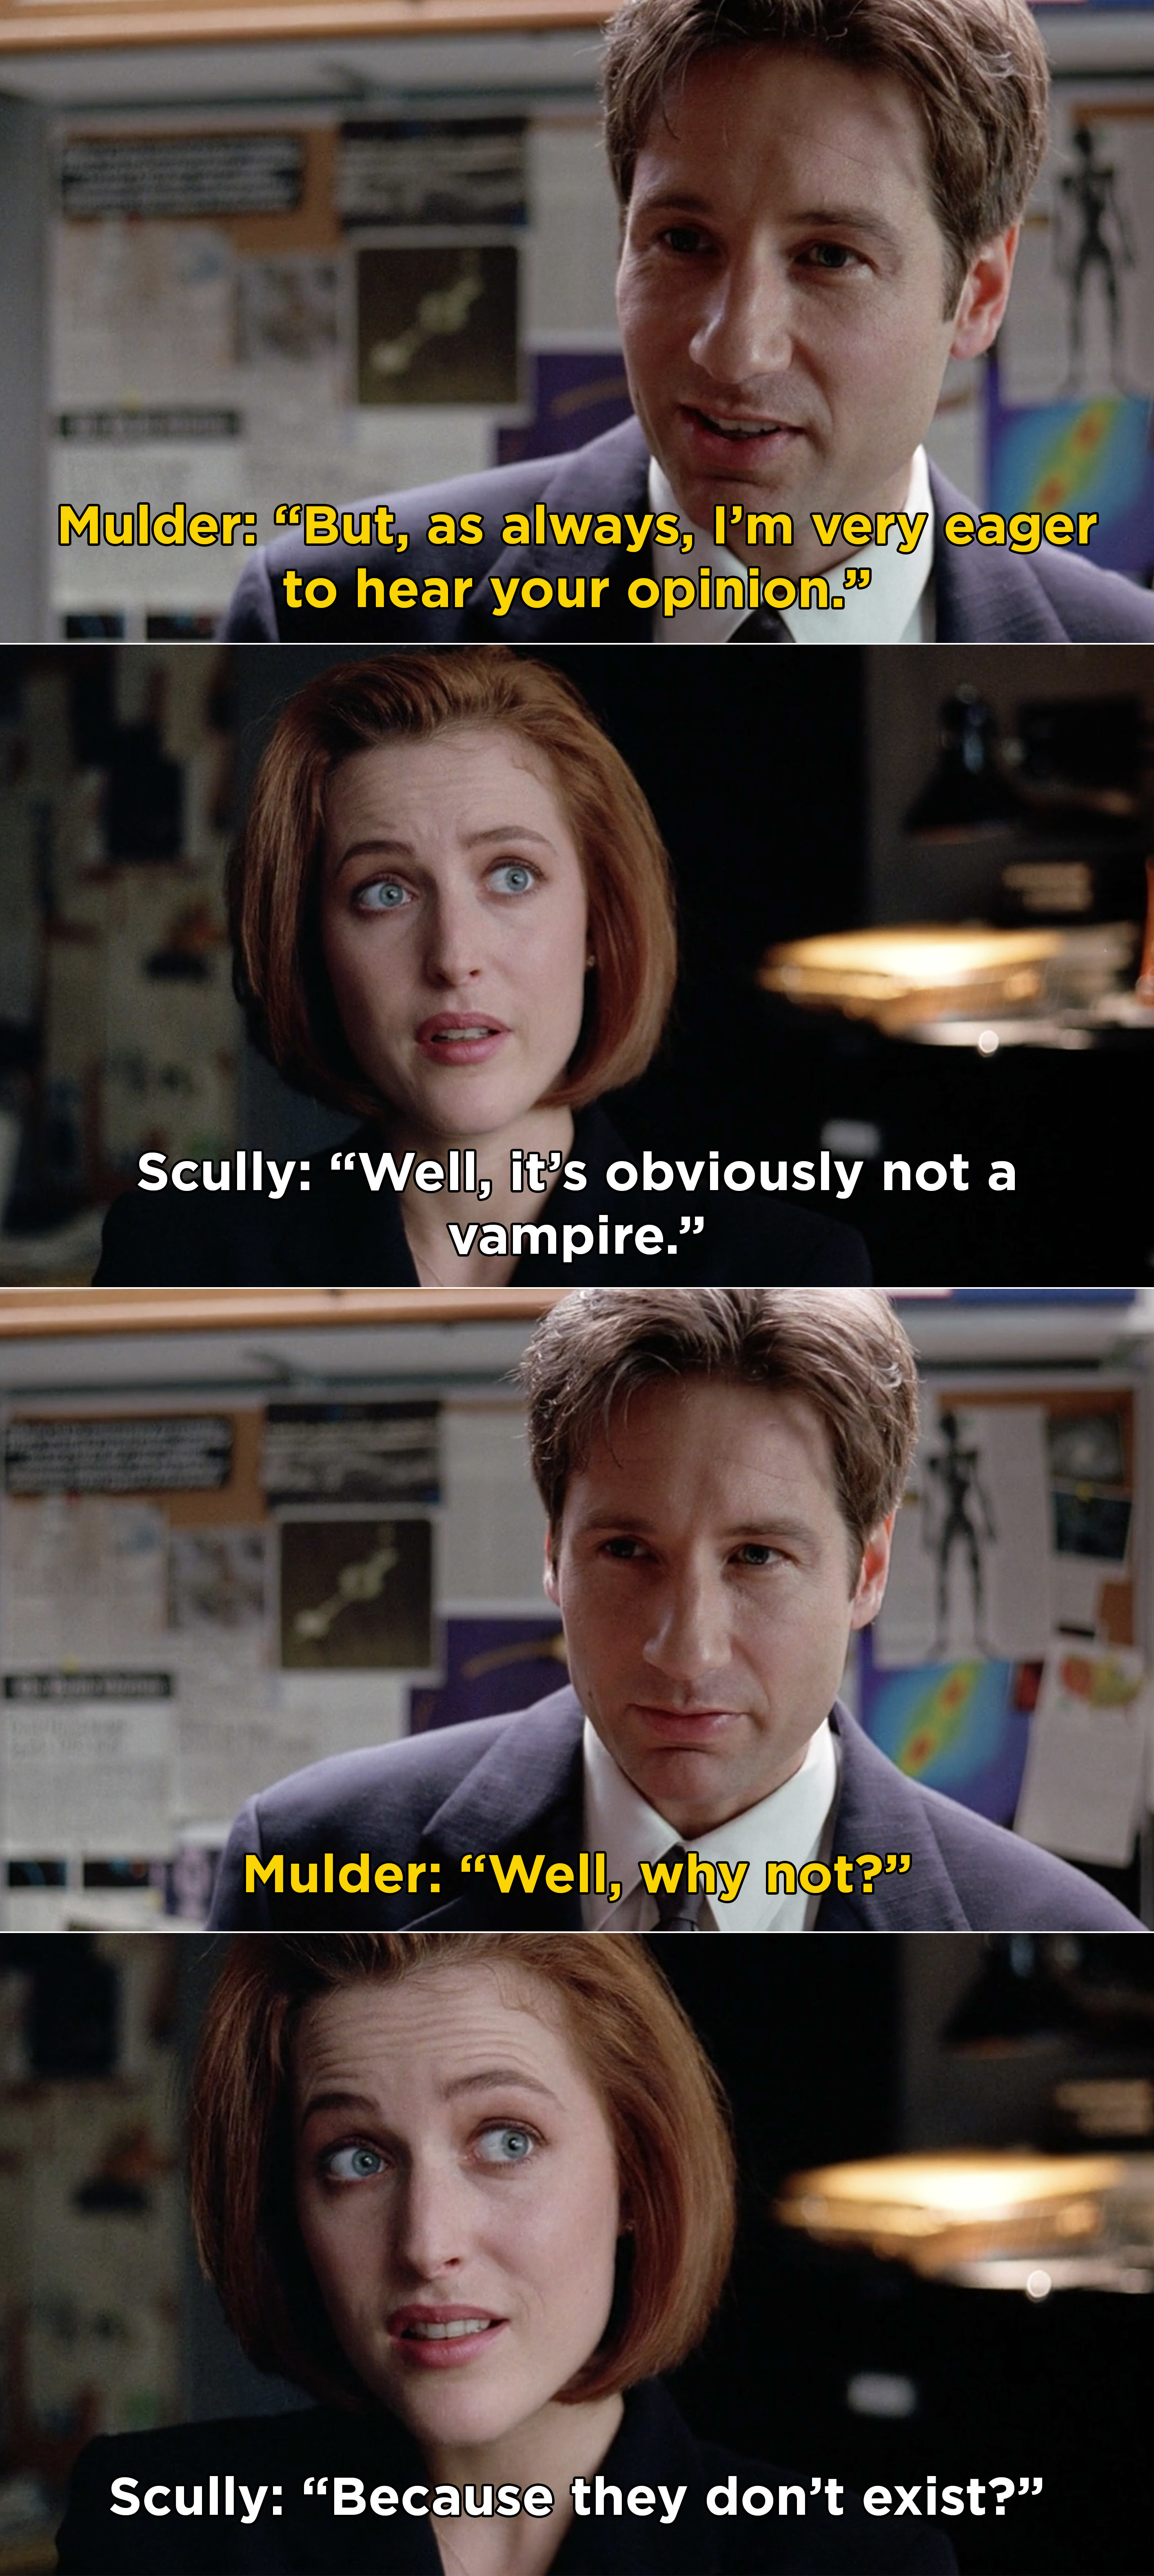 Mulder saying he can't wait to hear Scully's opinion and Scully saying it couldn't be vampires because they don't exist